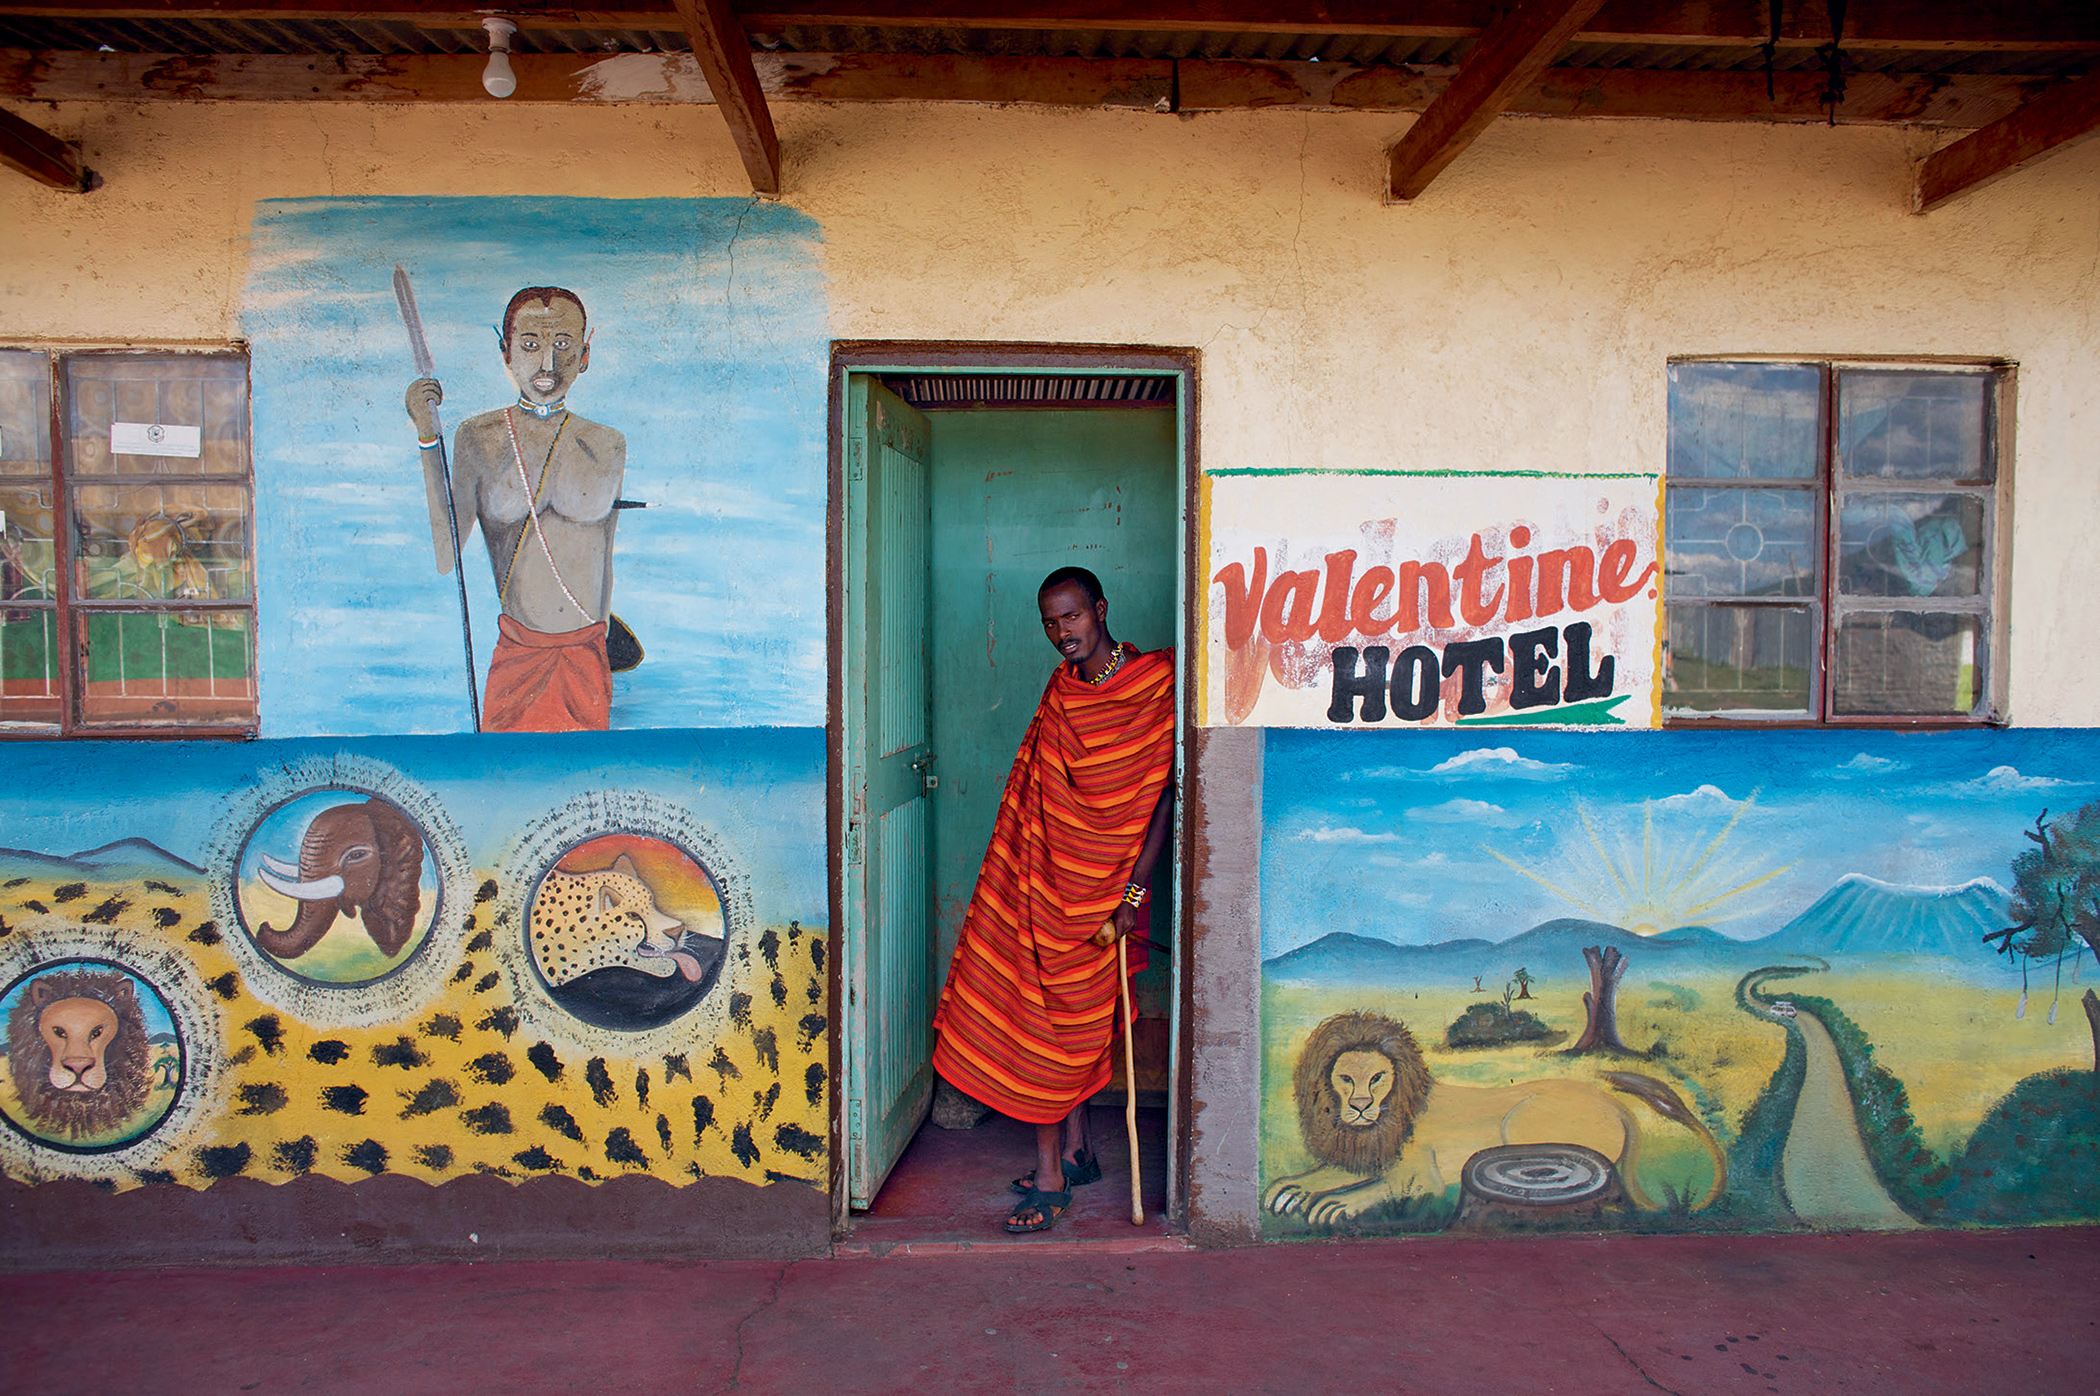 A Maasai man at a lodge on the tourist trail, Kenya. Maasai people are becoming participants in the tourist economy on their community-managed lands.